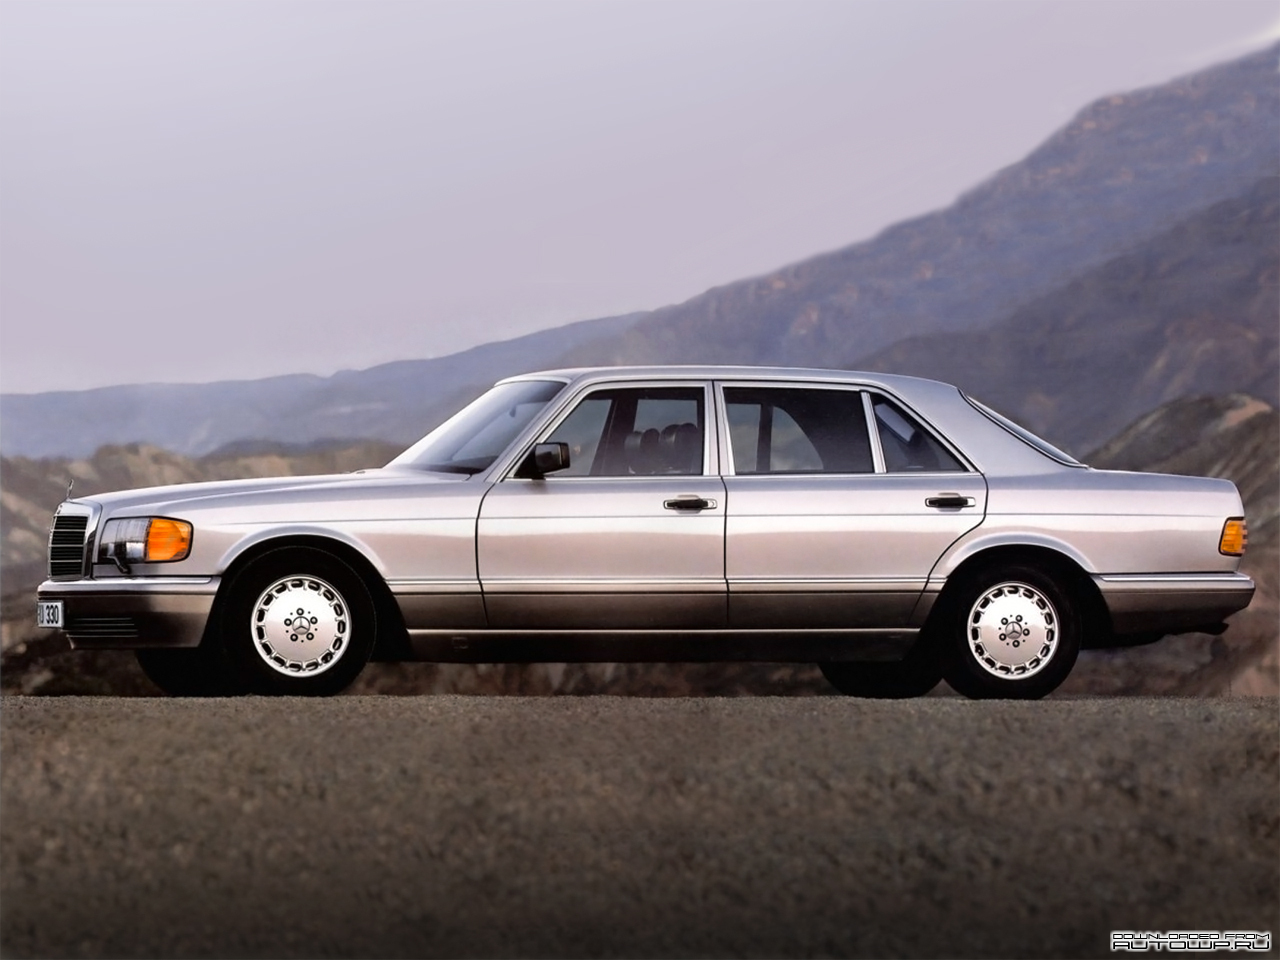 Mercedes benz s class w126 picture 76828 mercedes benz for Mercedes benz w126